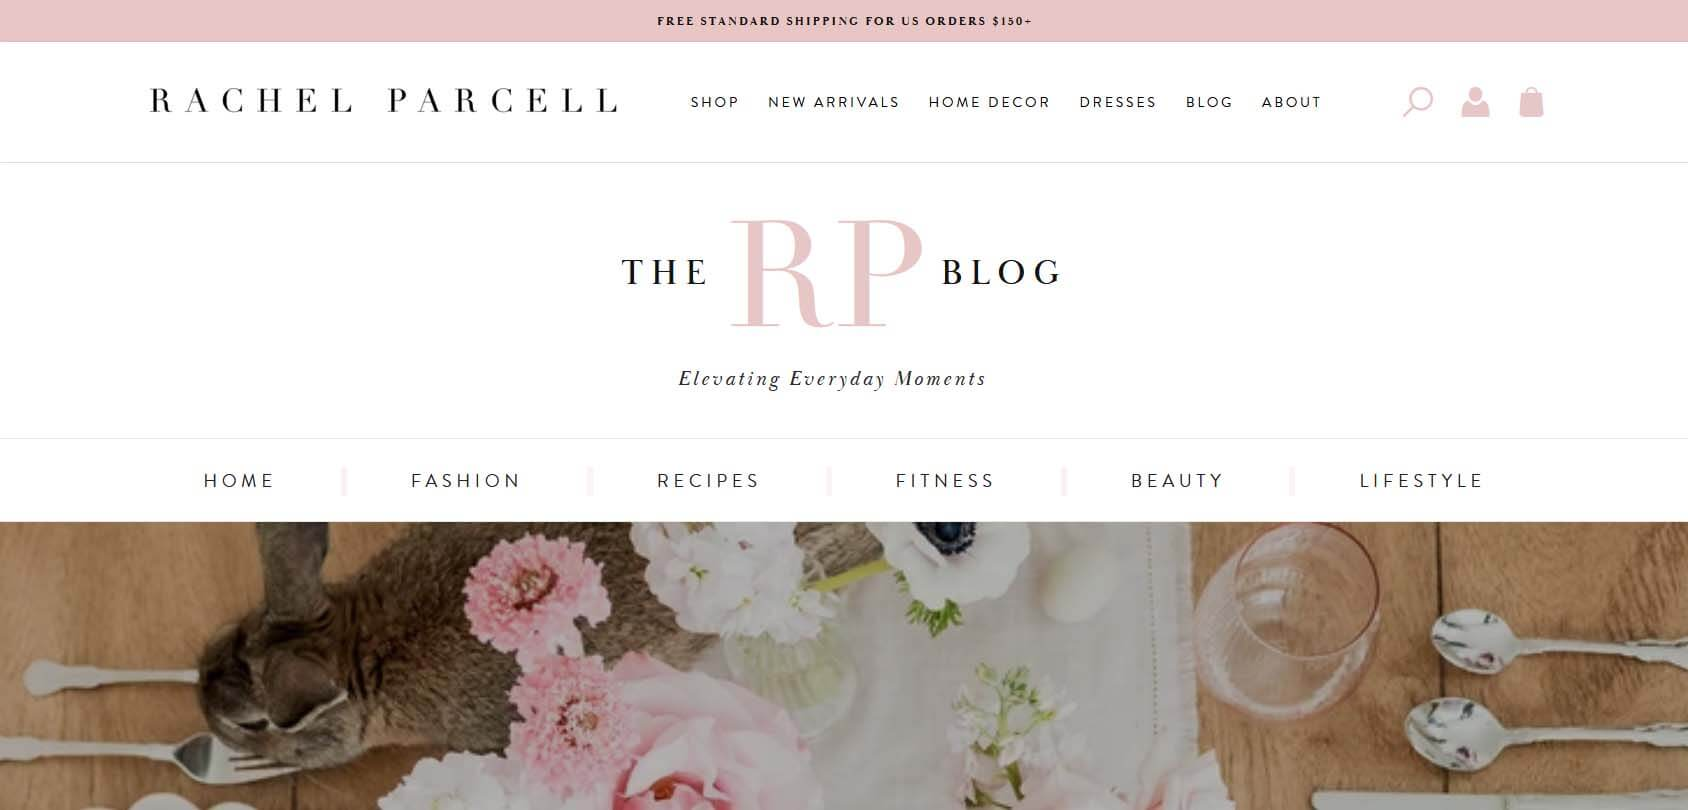 Rachel Parcell Homepage